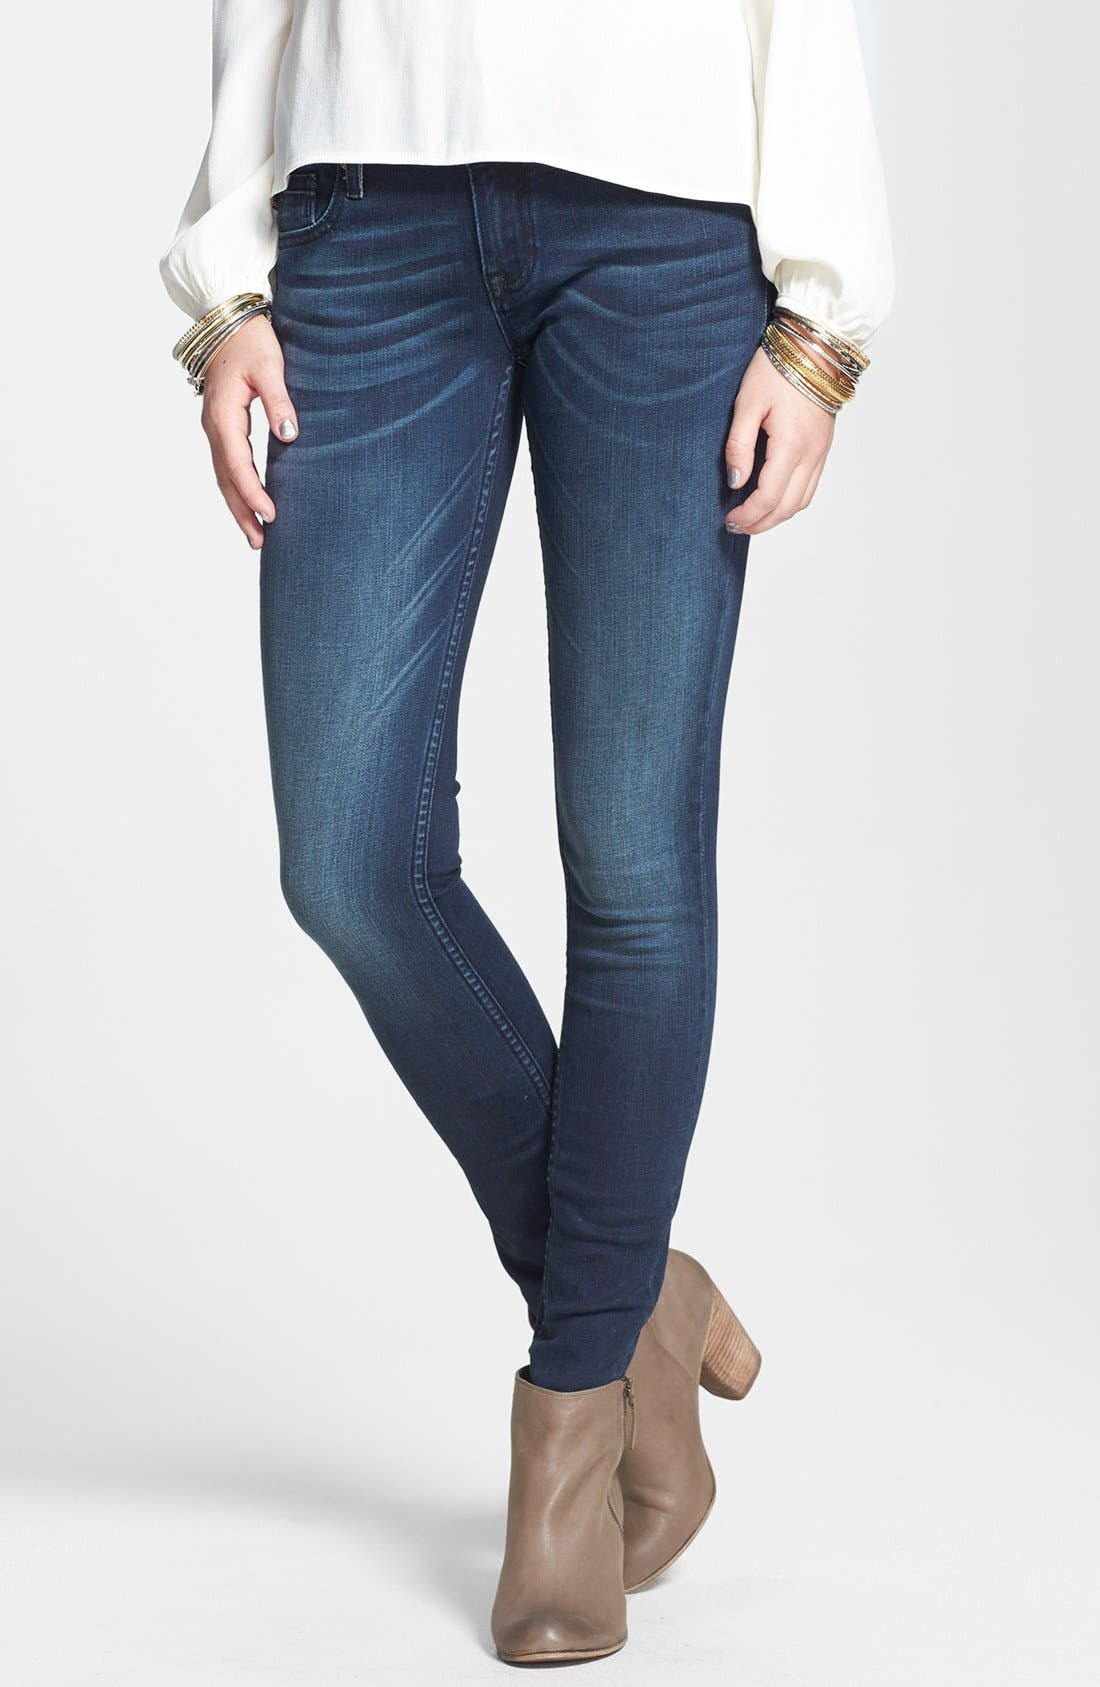 'New York' Flap Pocket Skinny Jeans,                             Main thumbnail 1, color,                             401